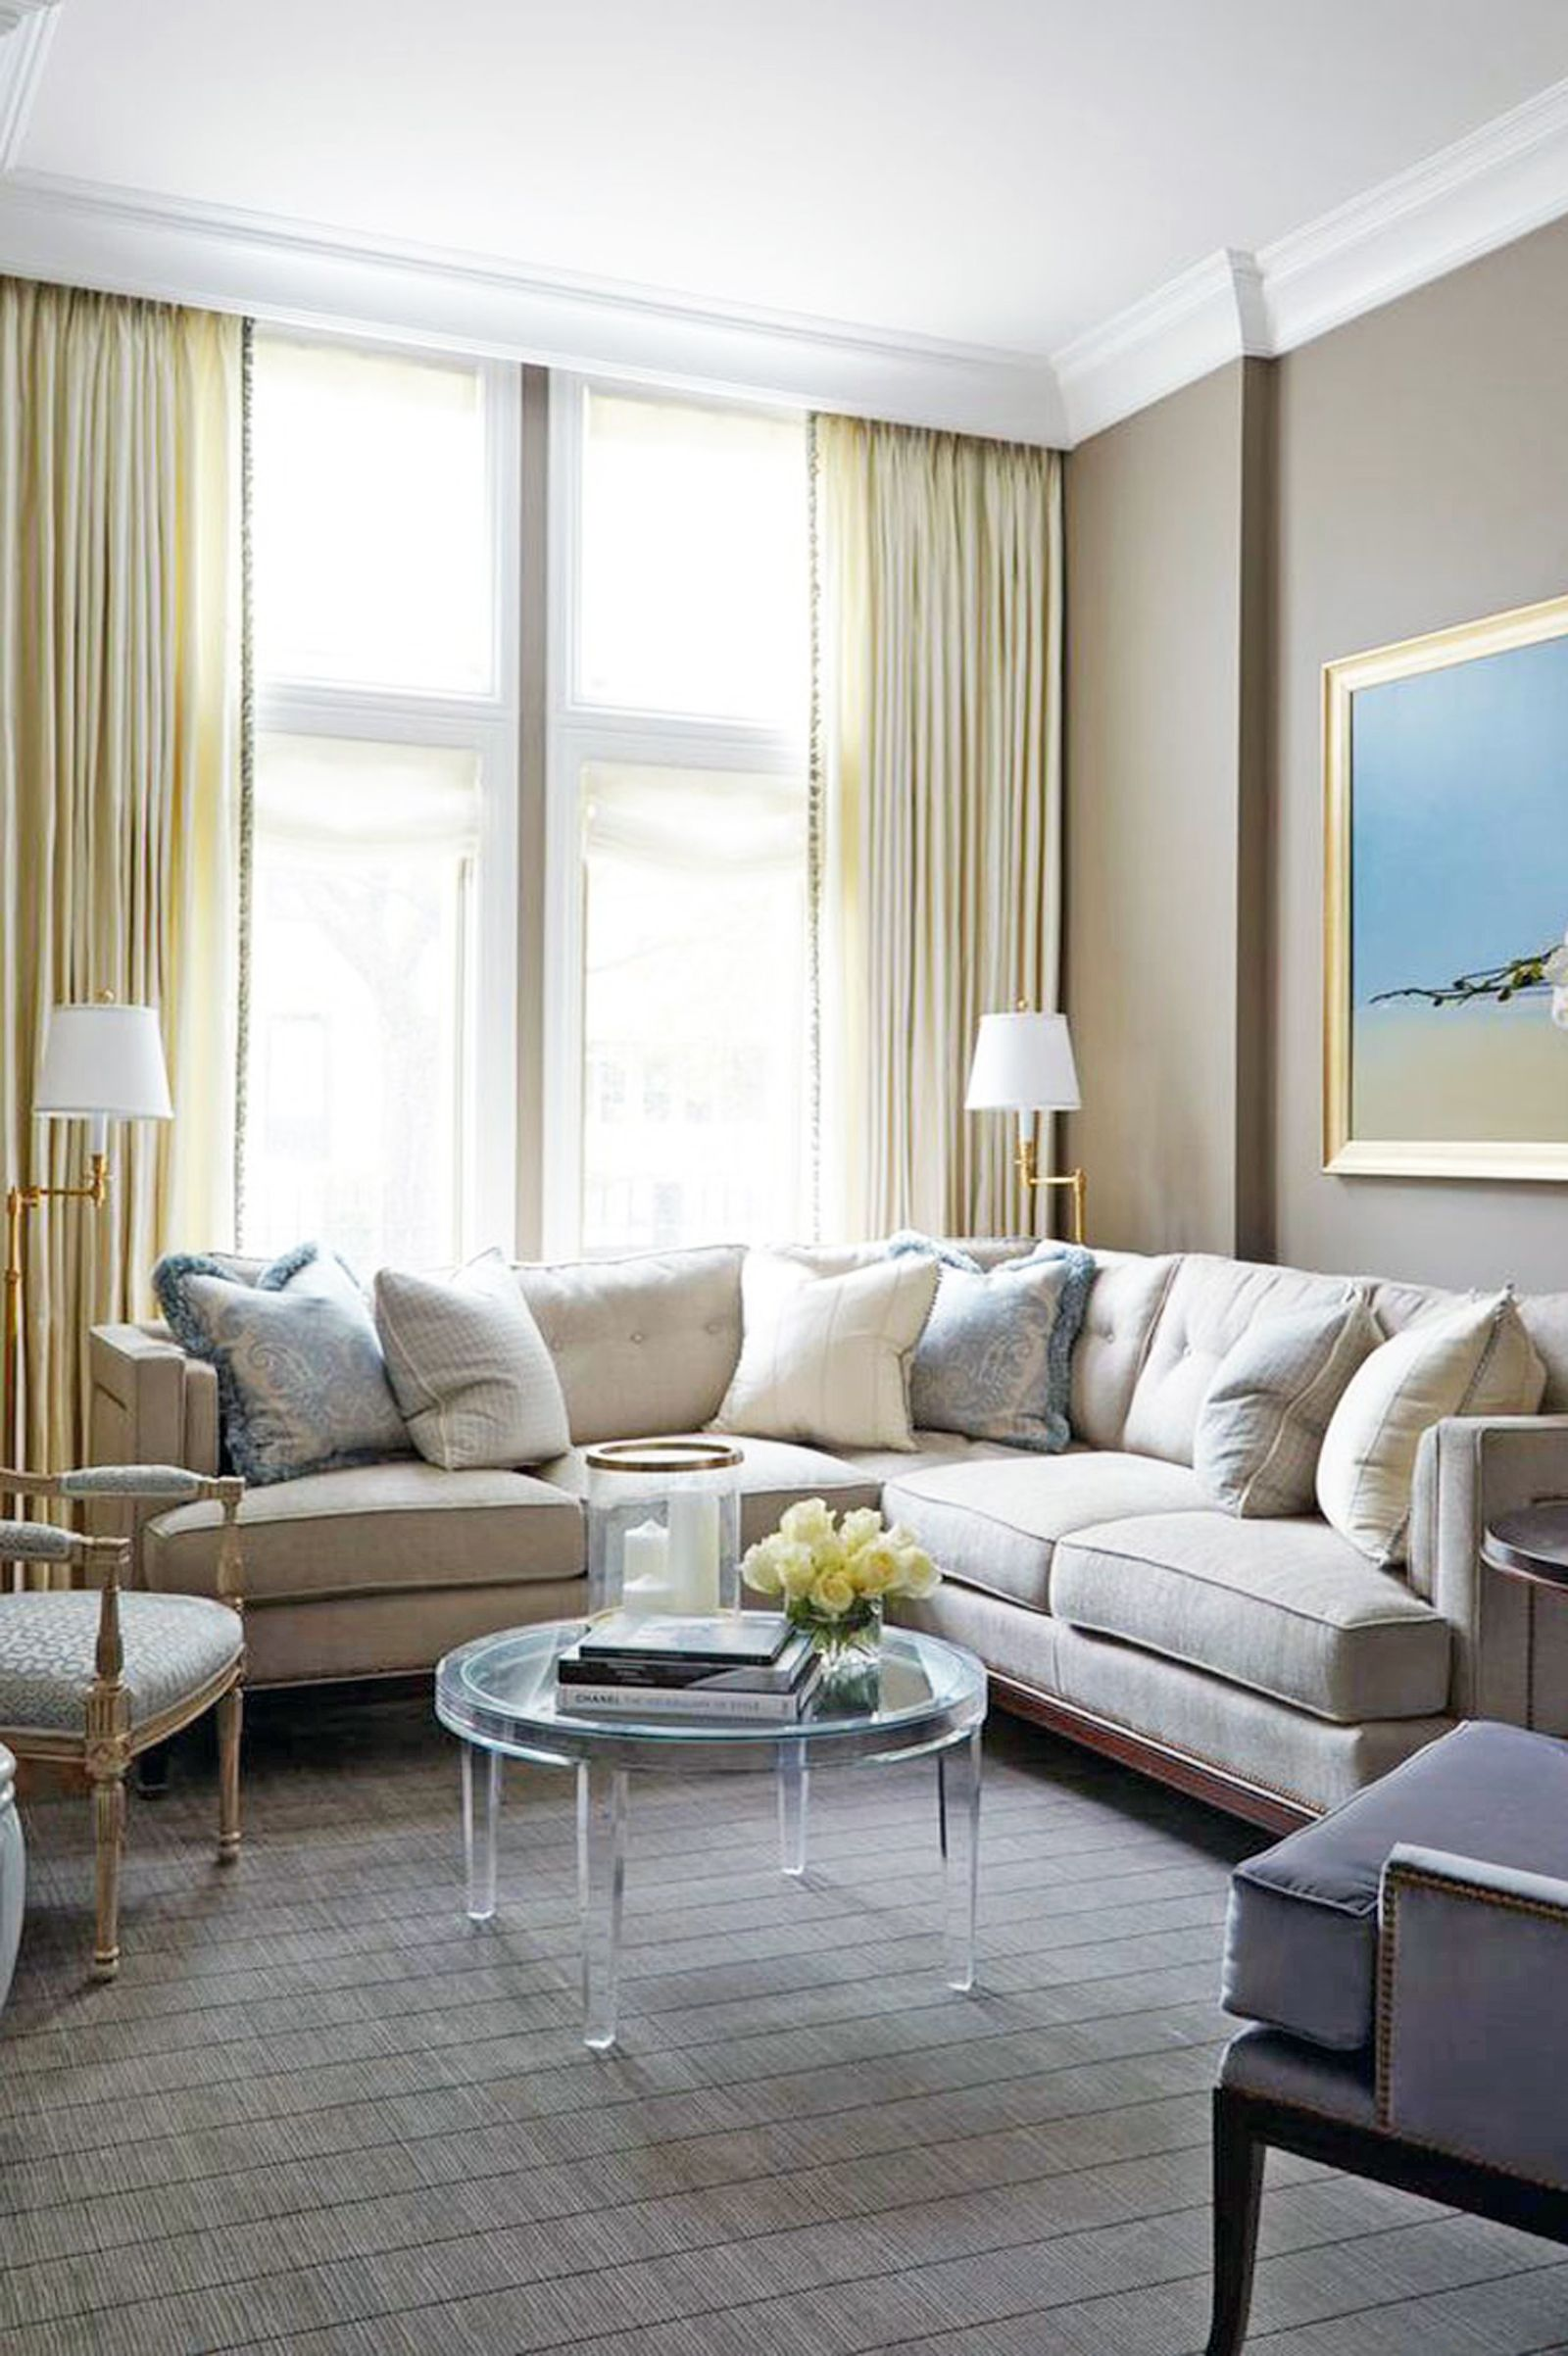 8 Easy-to-Use Paint Colors That Make Any Room Look Impeccable ...